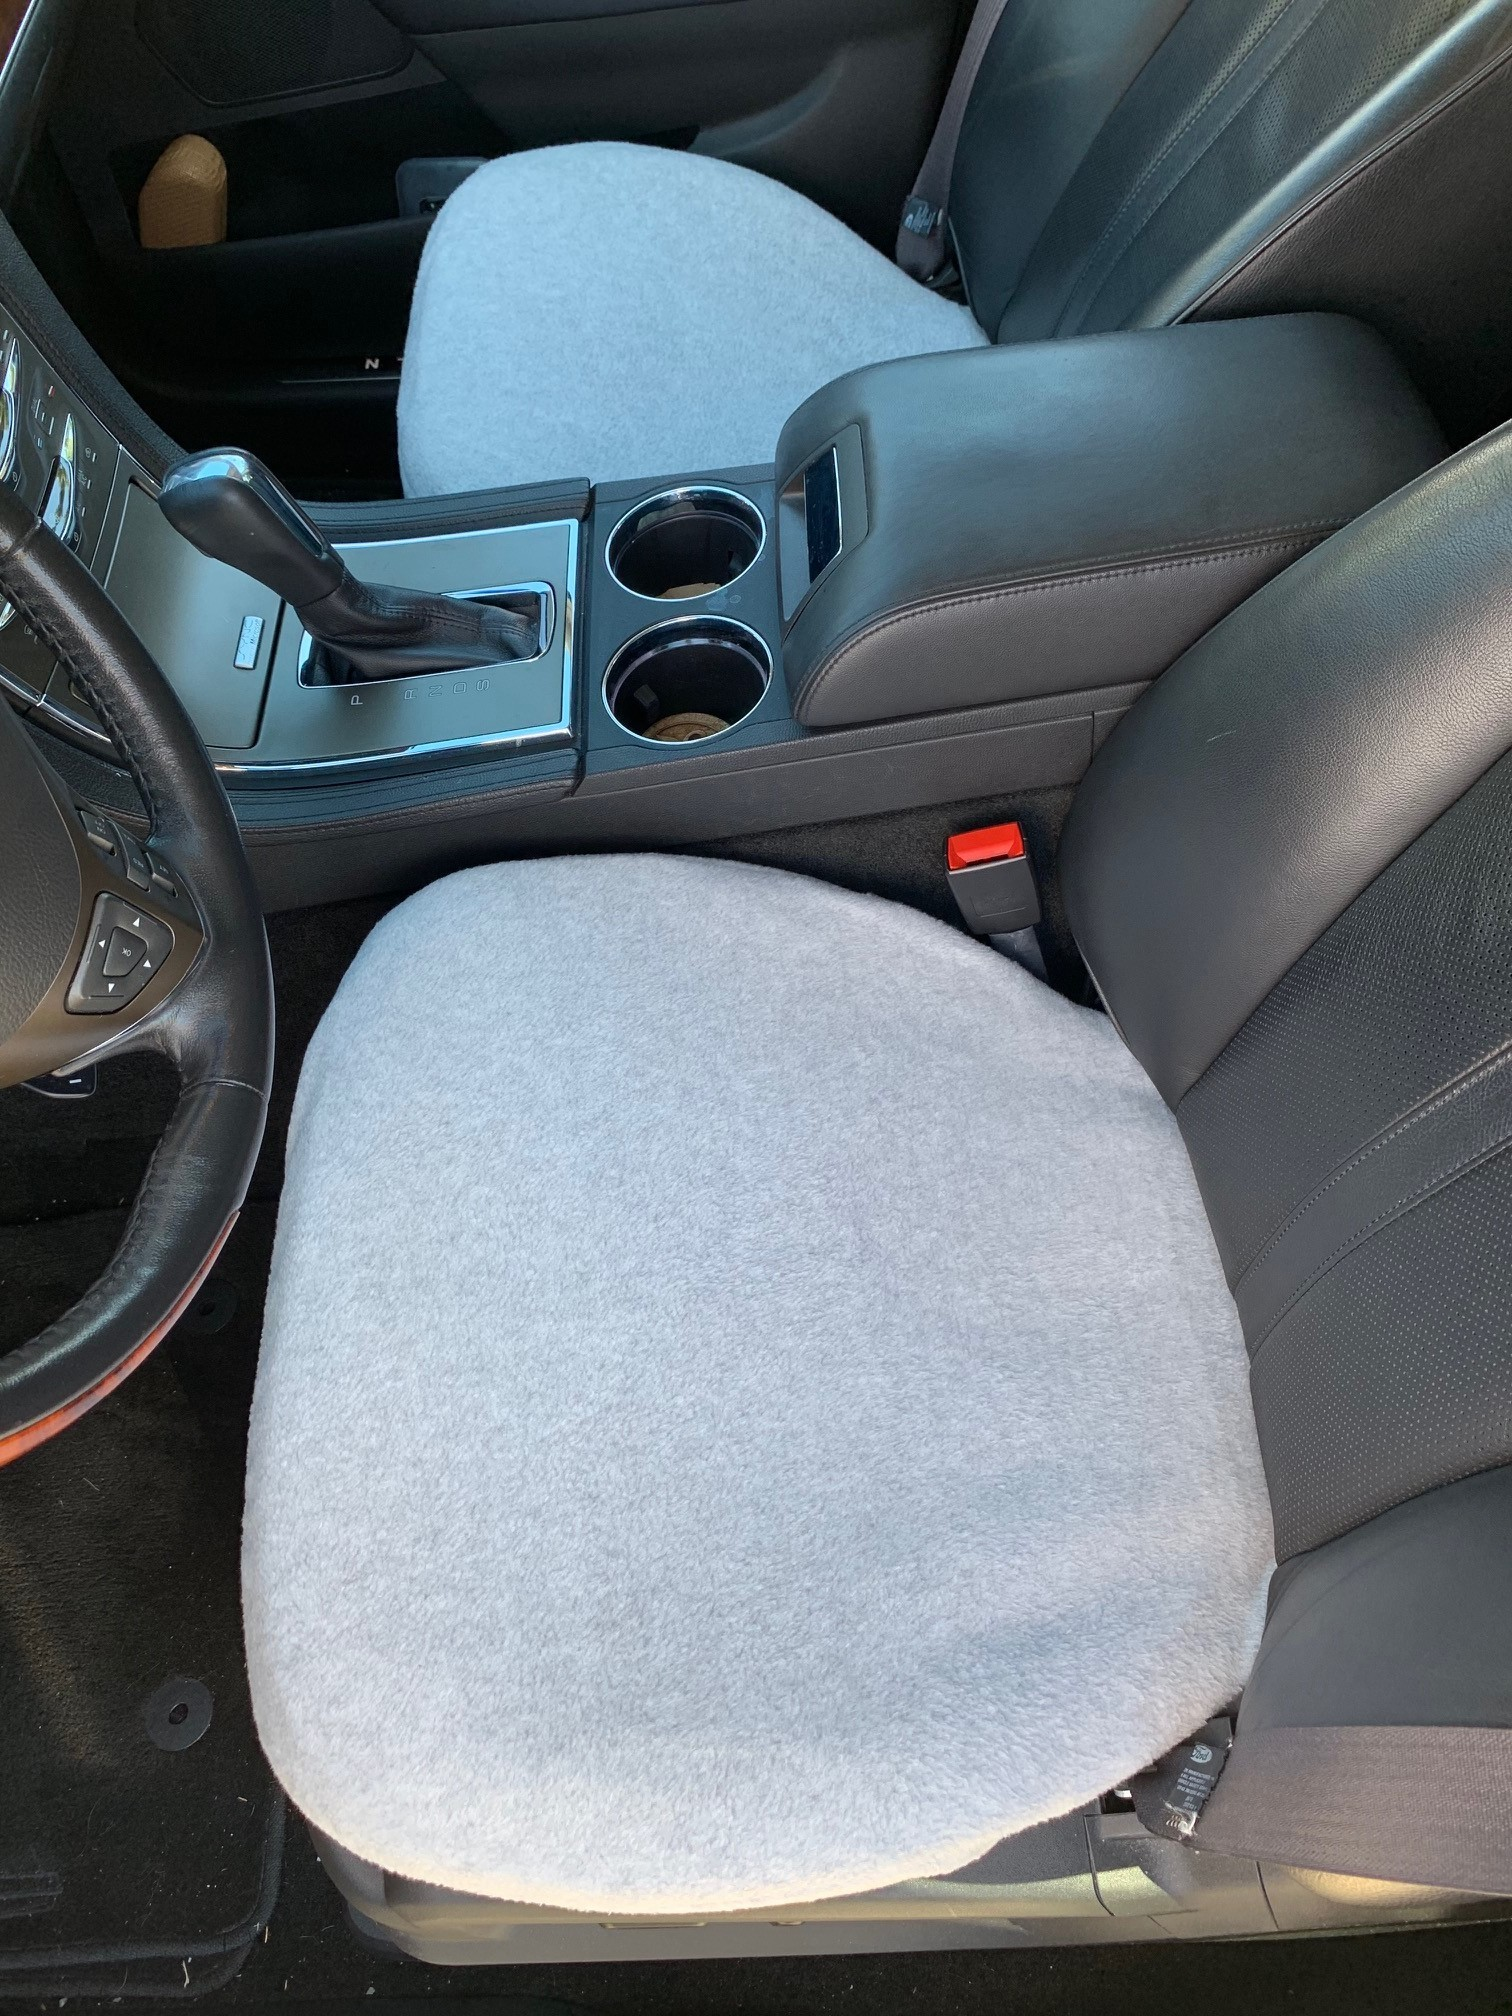 Fleece Bottom Seat Cover for Ford F-150, F-250, F-350 2000-19 (SINGLE)